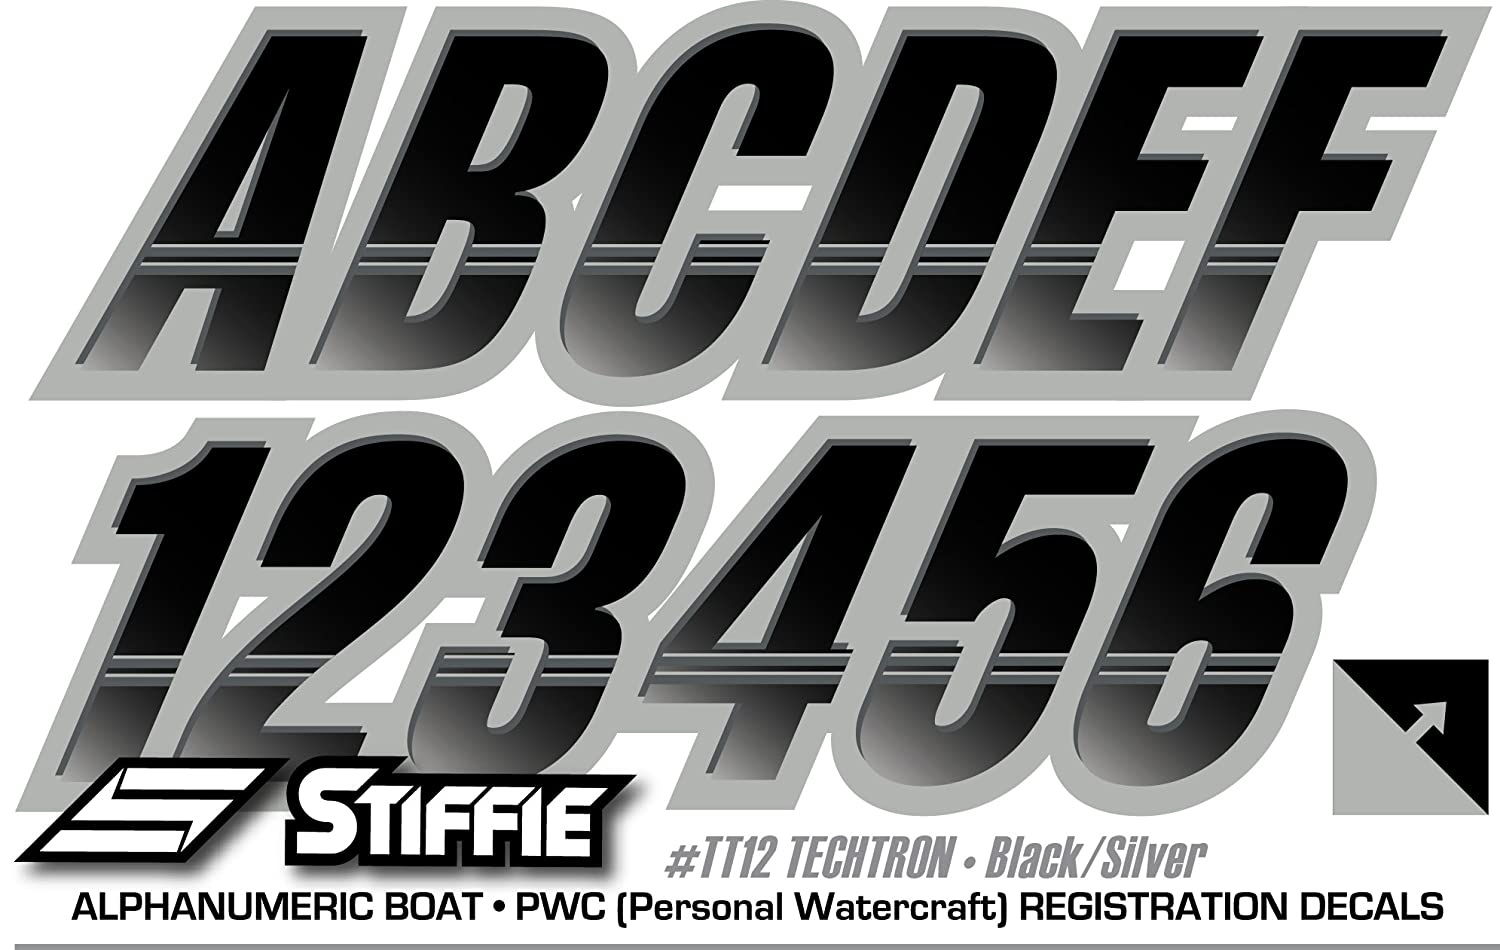 Stiffie Techtron Black//Silver 3 Alpha-Numeric Registration Identification Numbers Stickers Decals for Boats /& Personal Watercraft